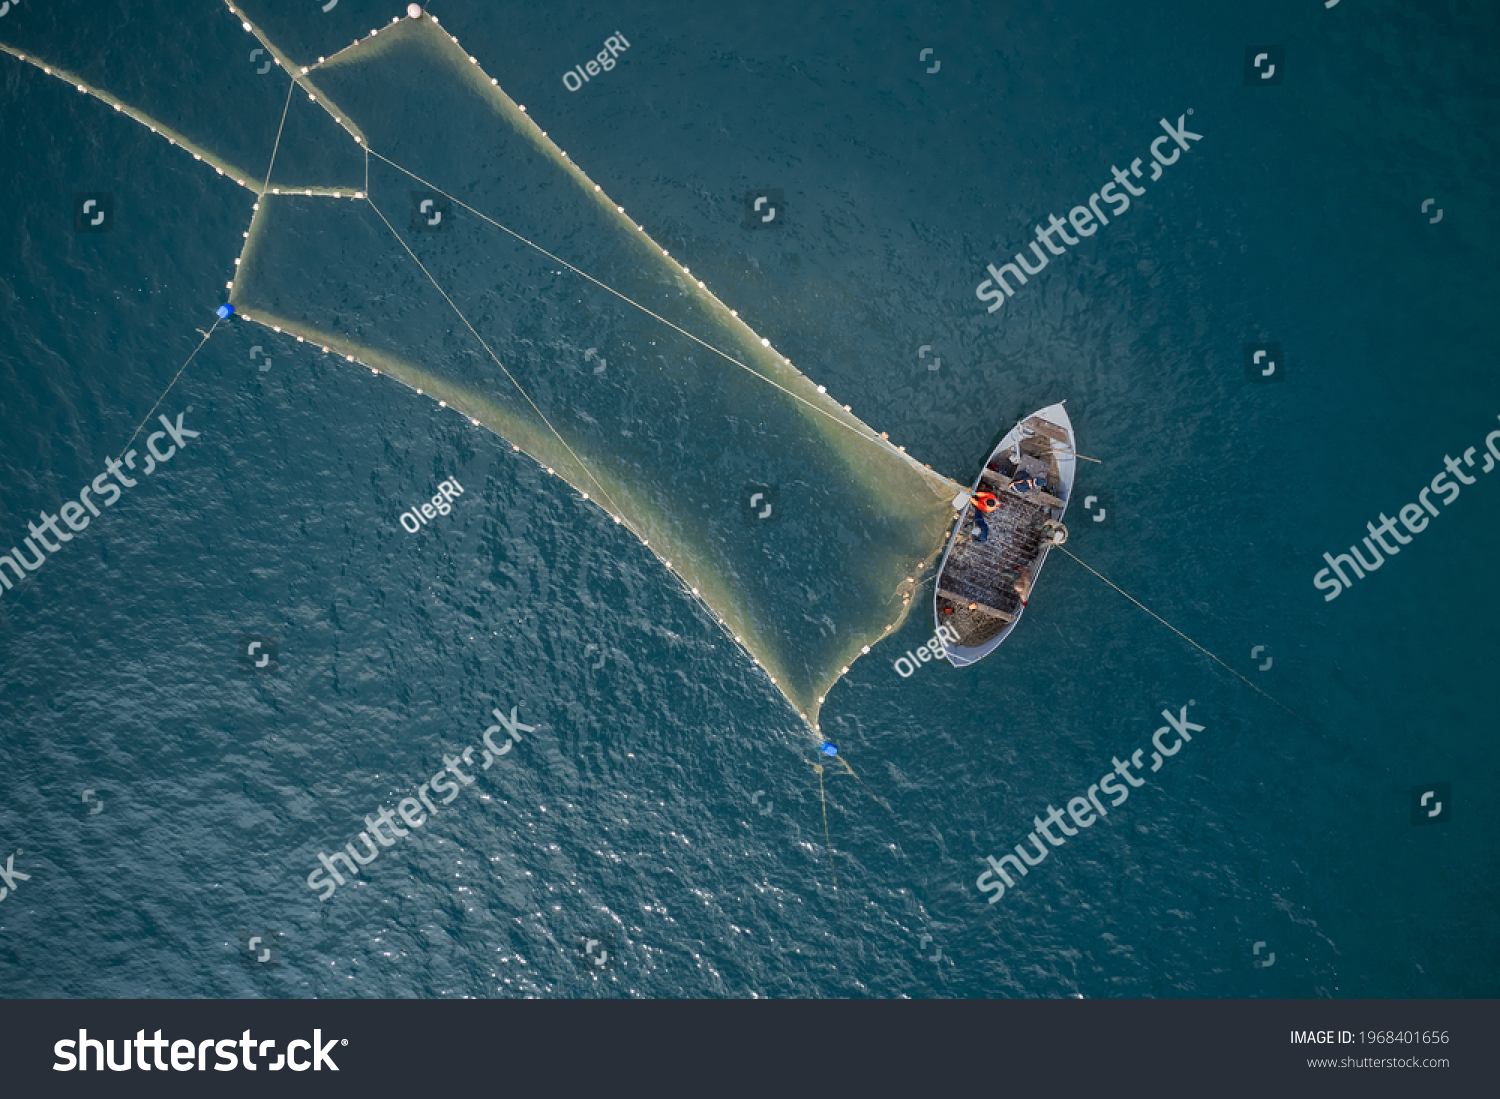 Vintage wooden boat in coral sea. Boat drone photo. A fisherman on a fishing boat is casting a net for catching fish. #1968401656